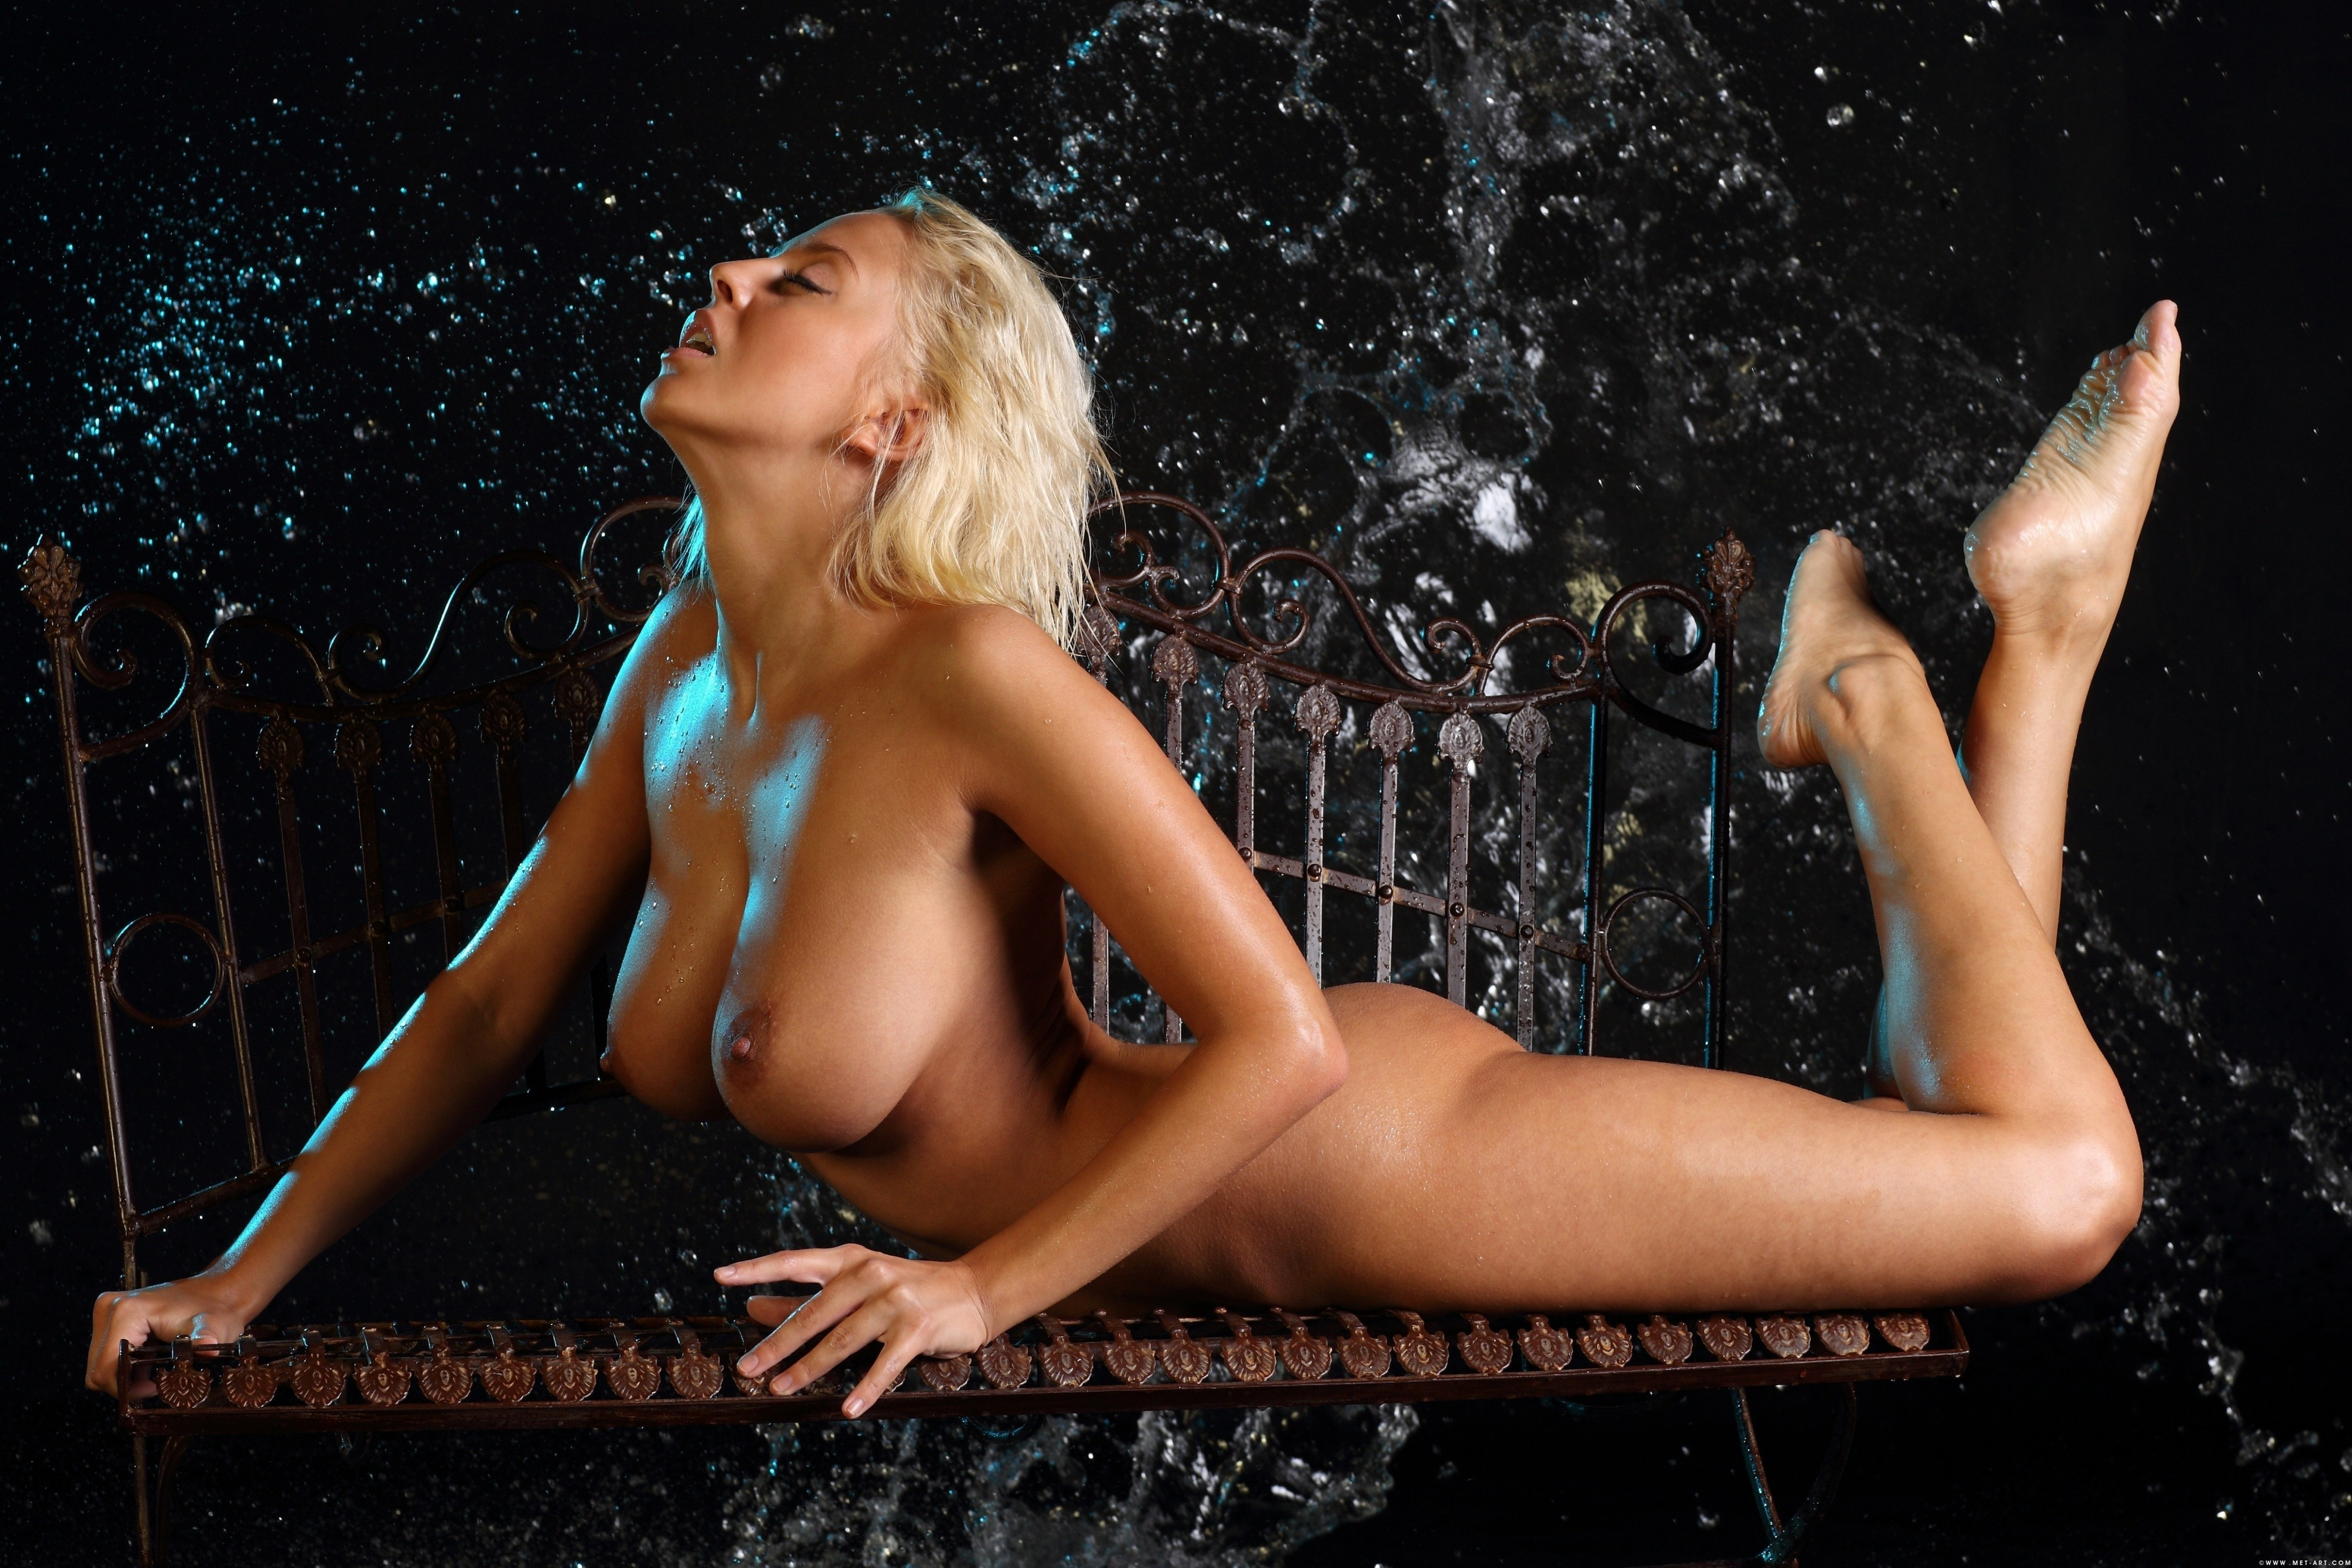 Wallpaper Mandy Dee, Blonde, Sexy Girl, Nude, Naked, Boobs -9632